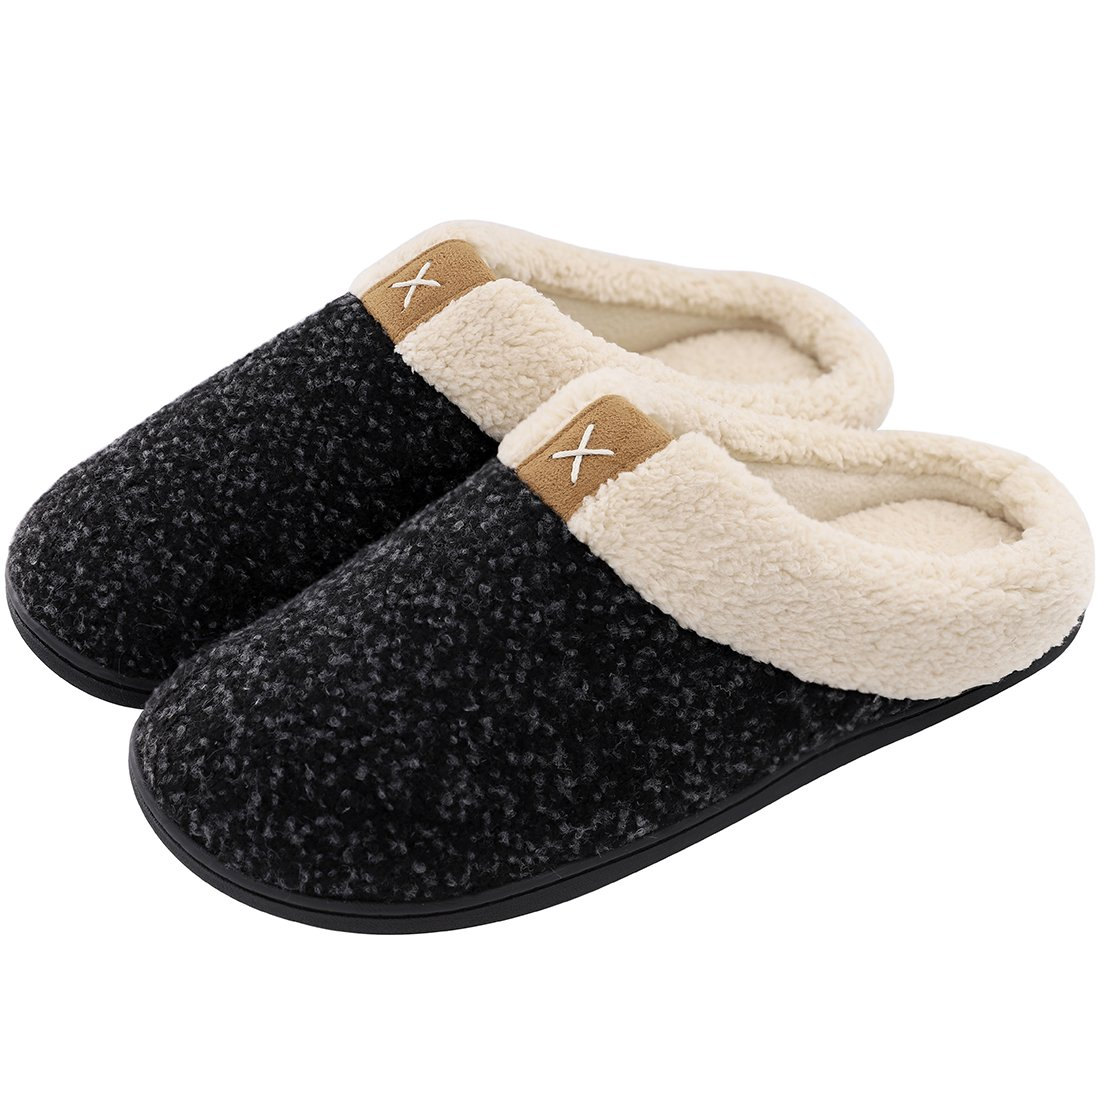 Men's ULTRAIDEAS Cozy Memory Foam Slippers